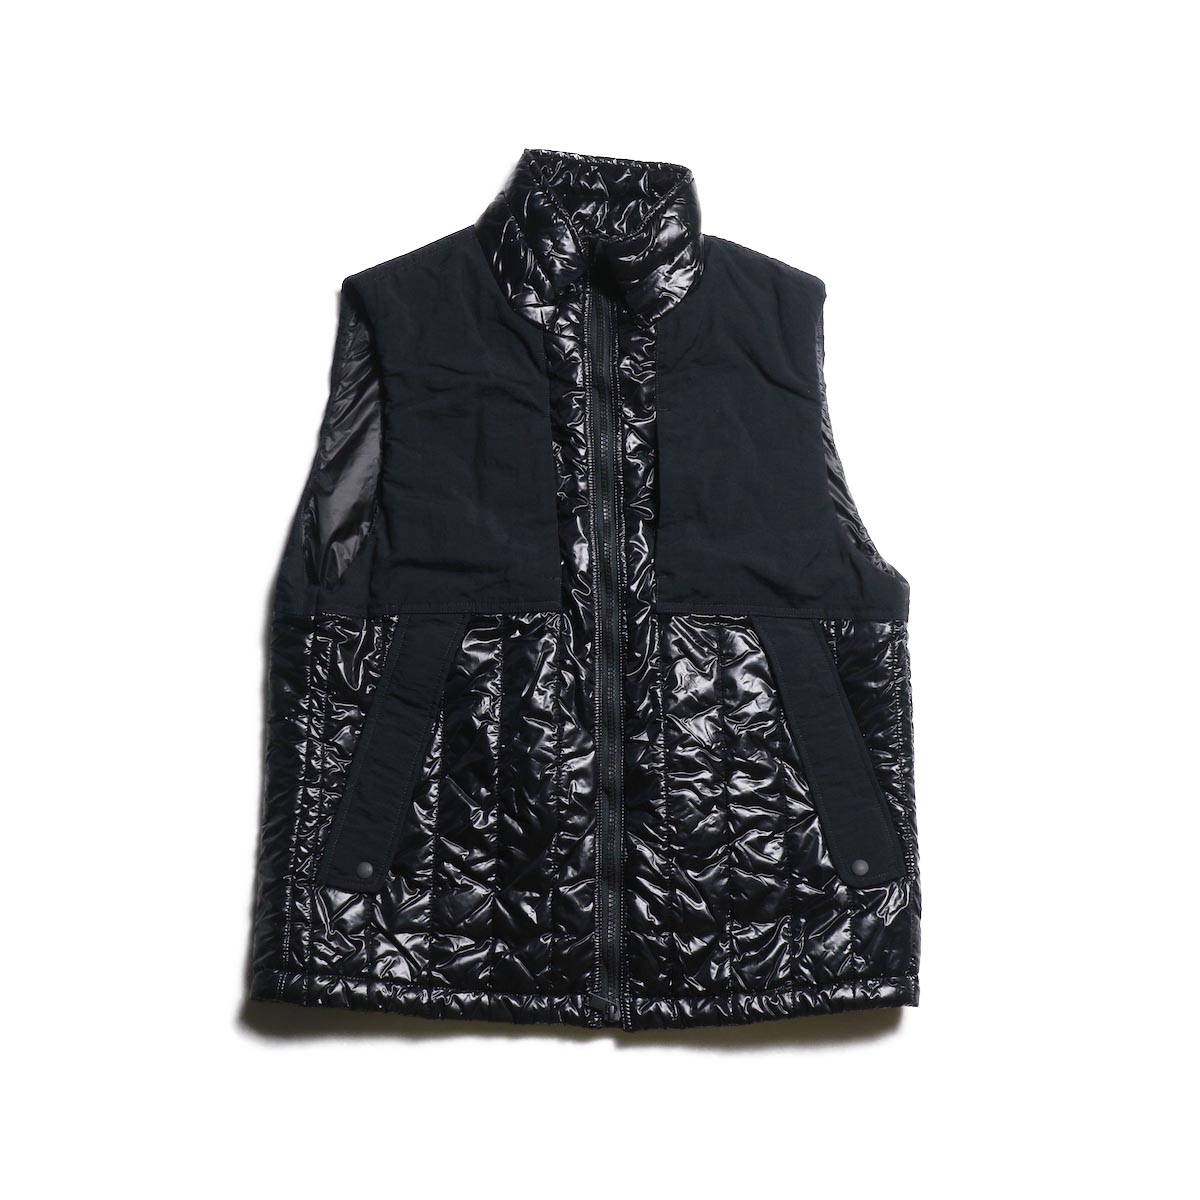 nonnative / ALPINIST PUFF VEST NYLON DICROS DNA LIGHT (Black)